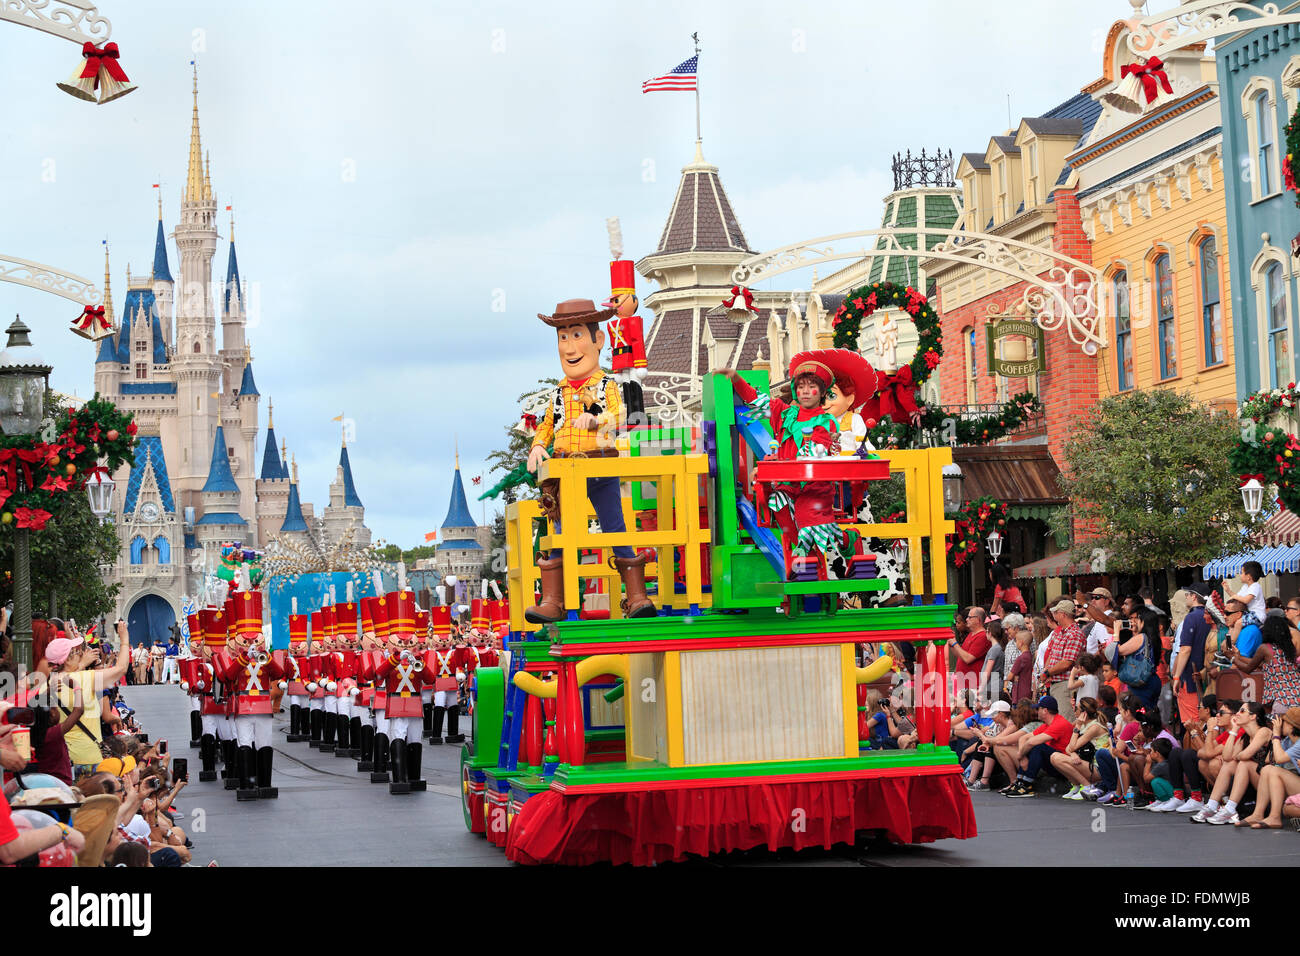 Christmas Parade im Magic Kingdom, Orlando, Florida Stockbild